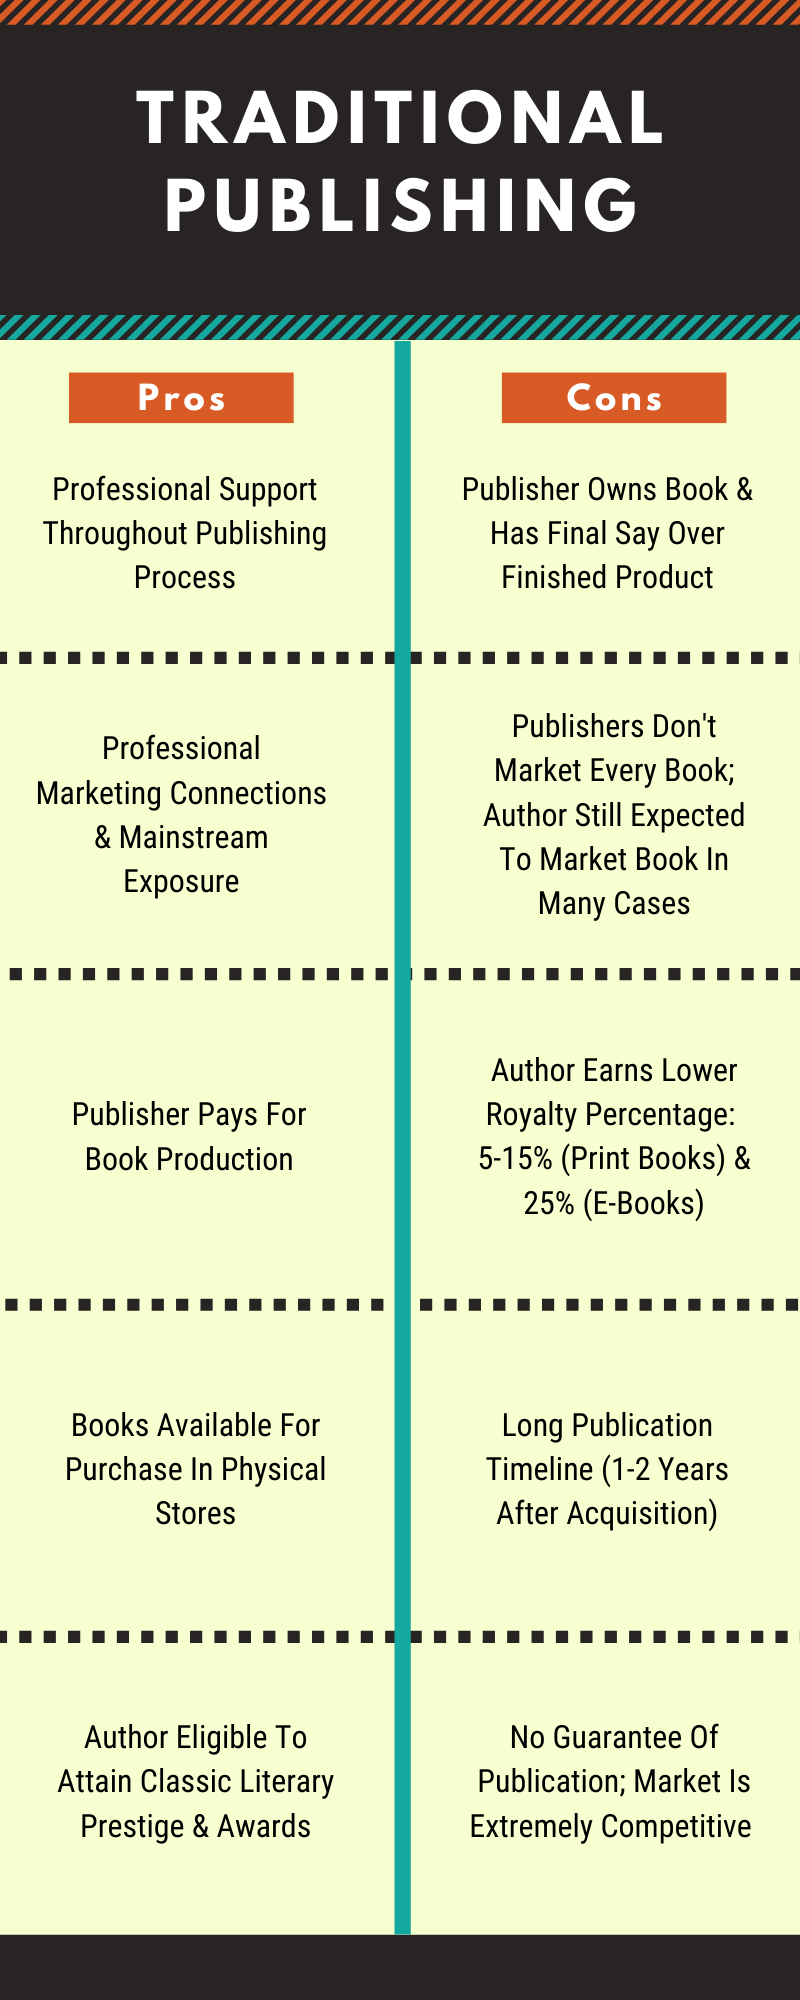 Pros & Cons of Traditional Publishing